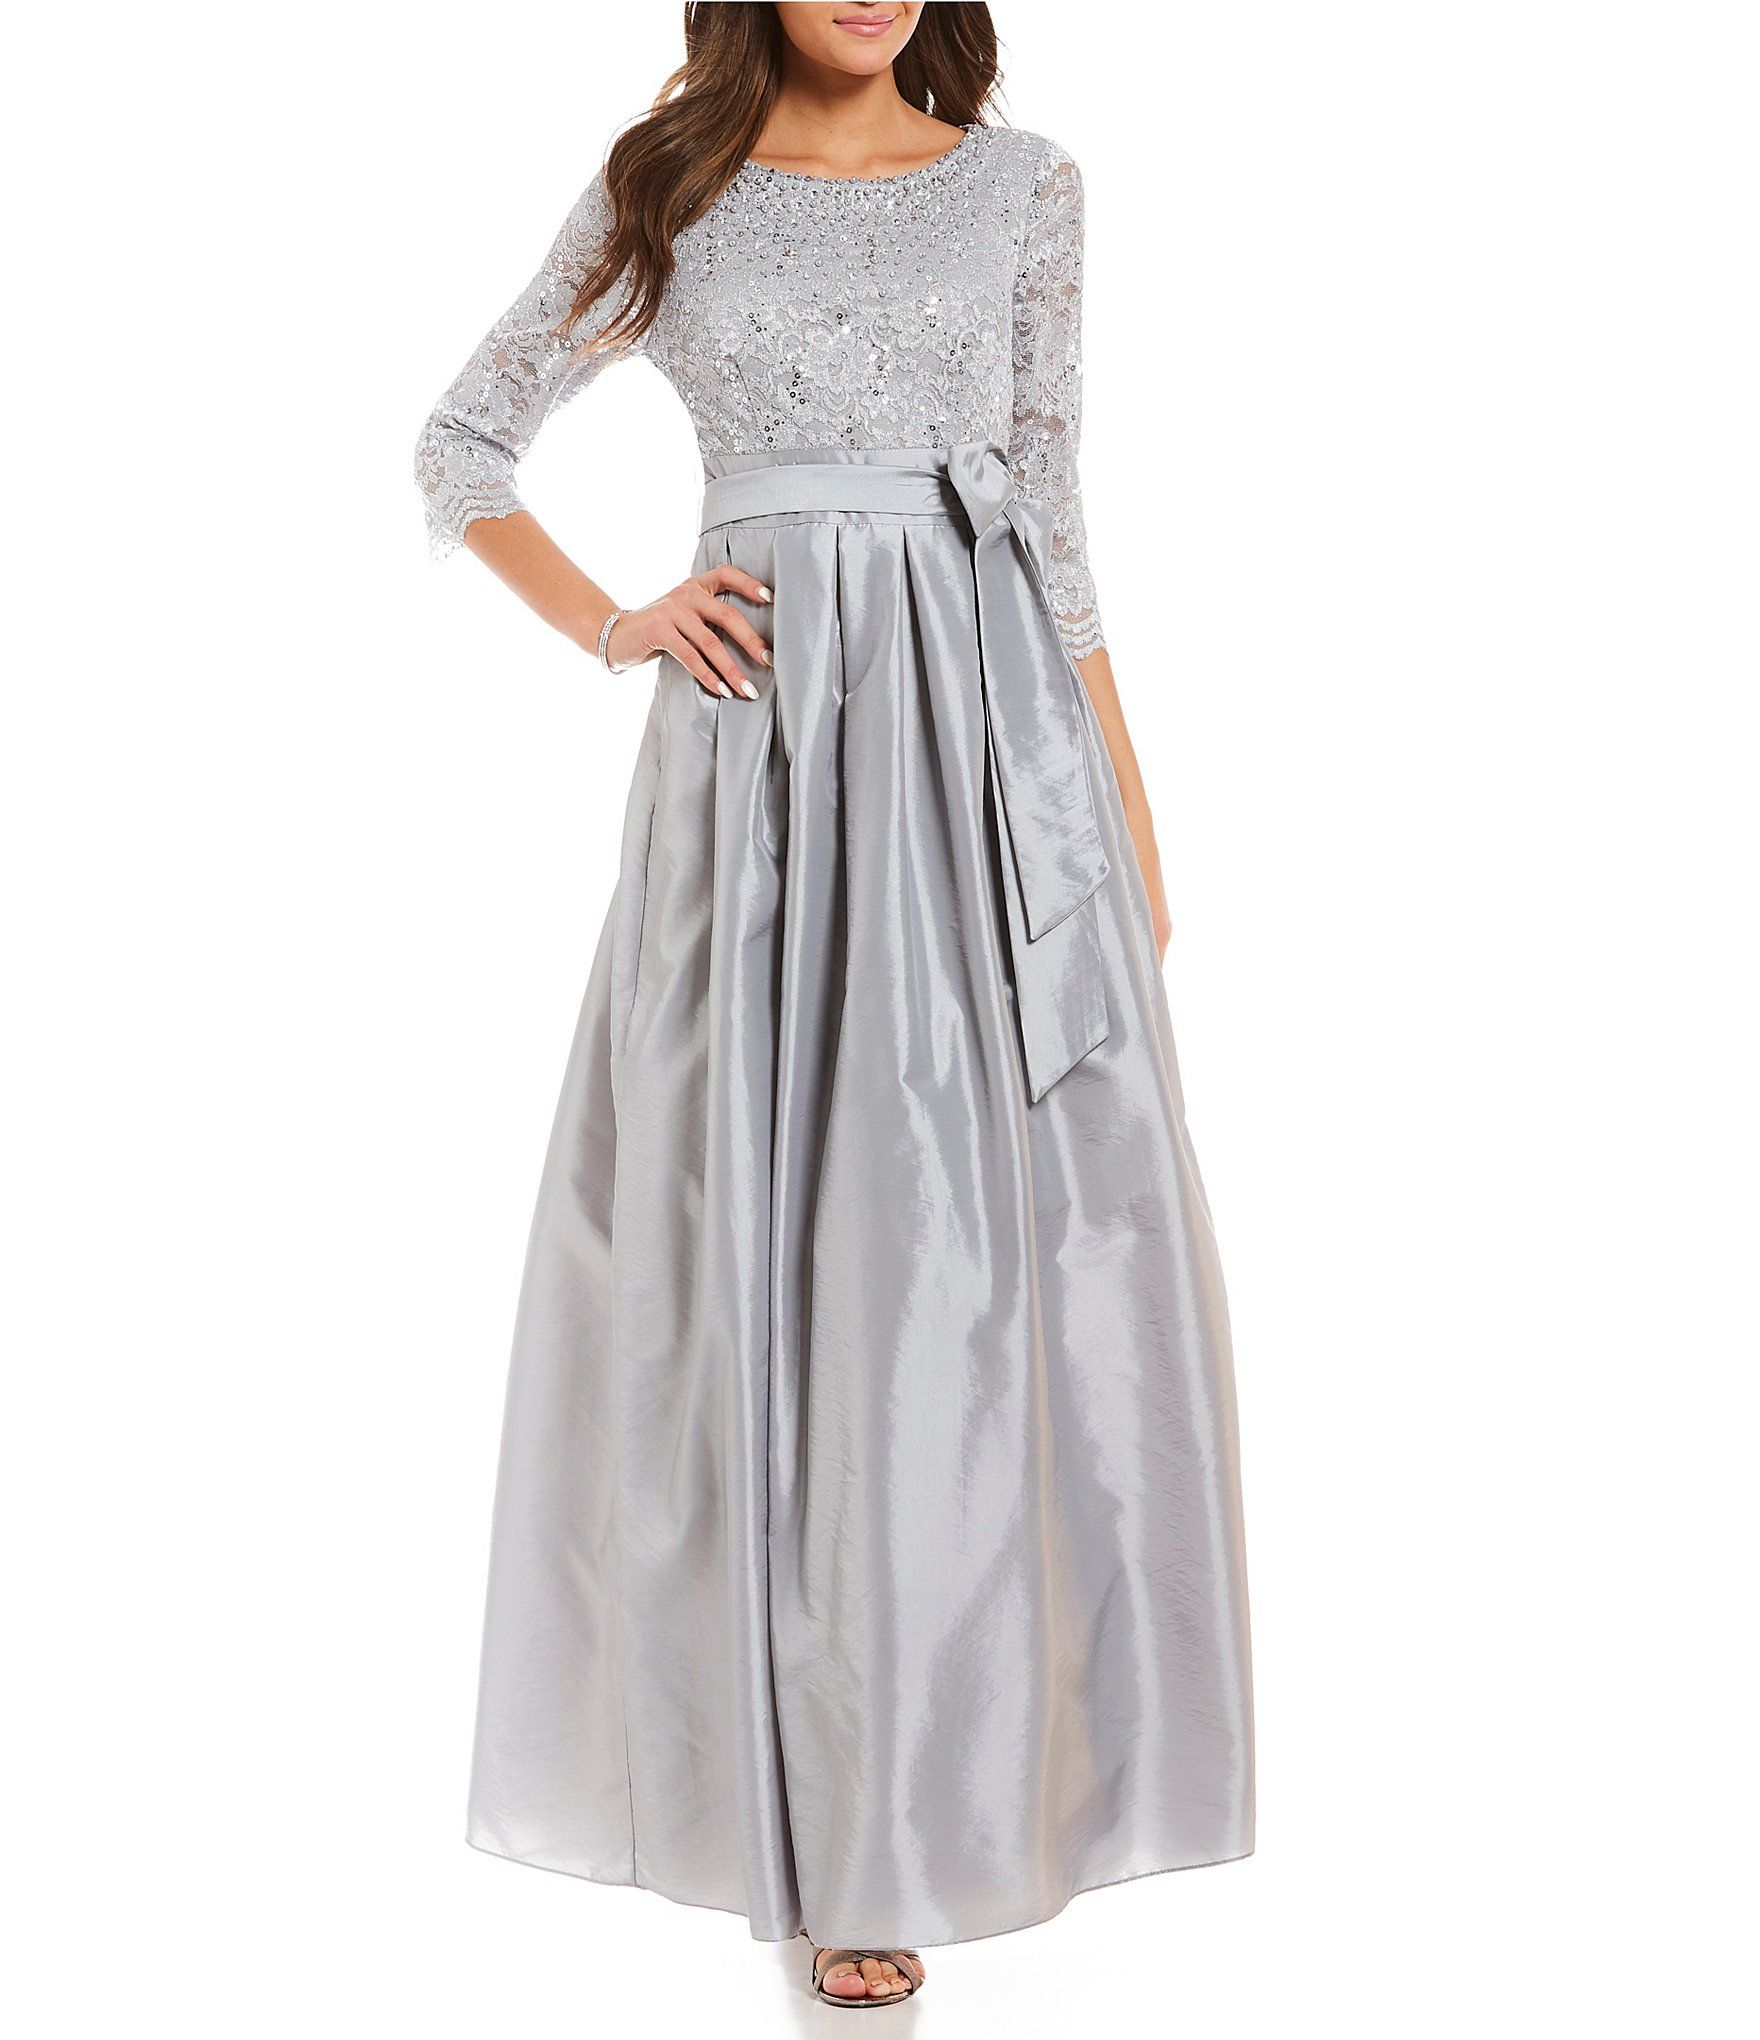 Dillards Mother of Bride Dresses Grey